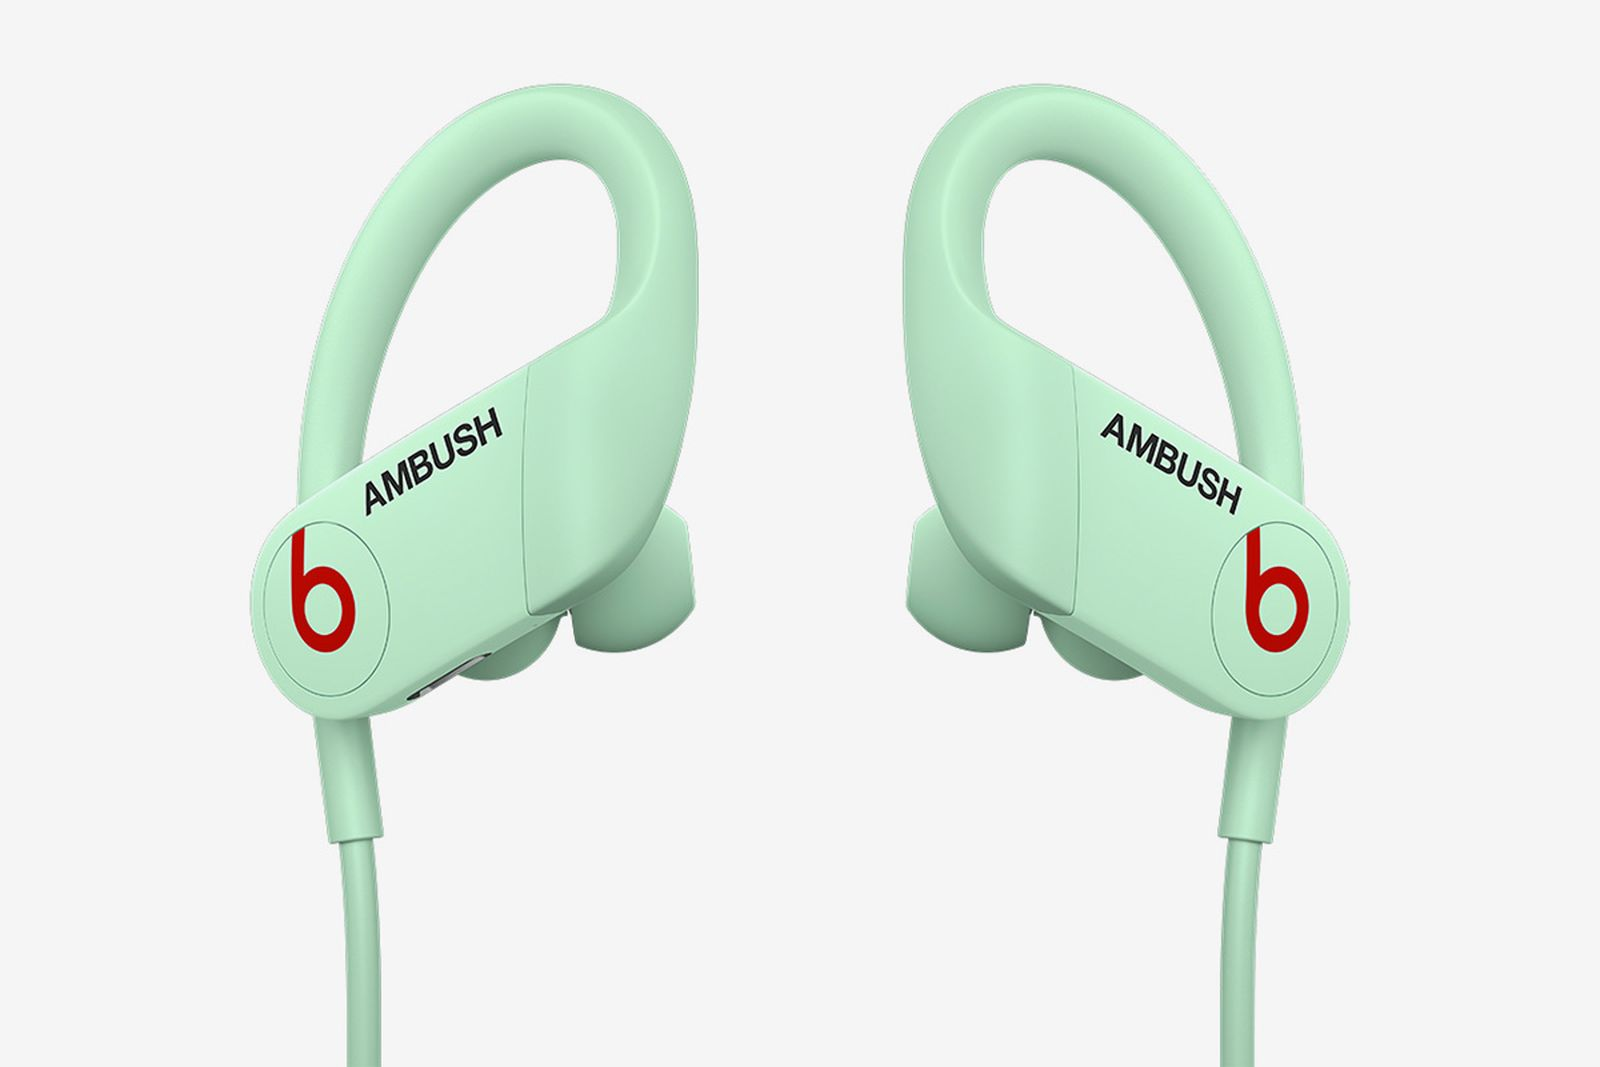 beats-ambush-glow-in-the-dark-powerbeats-07